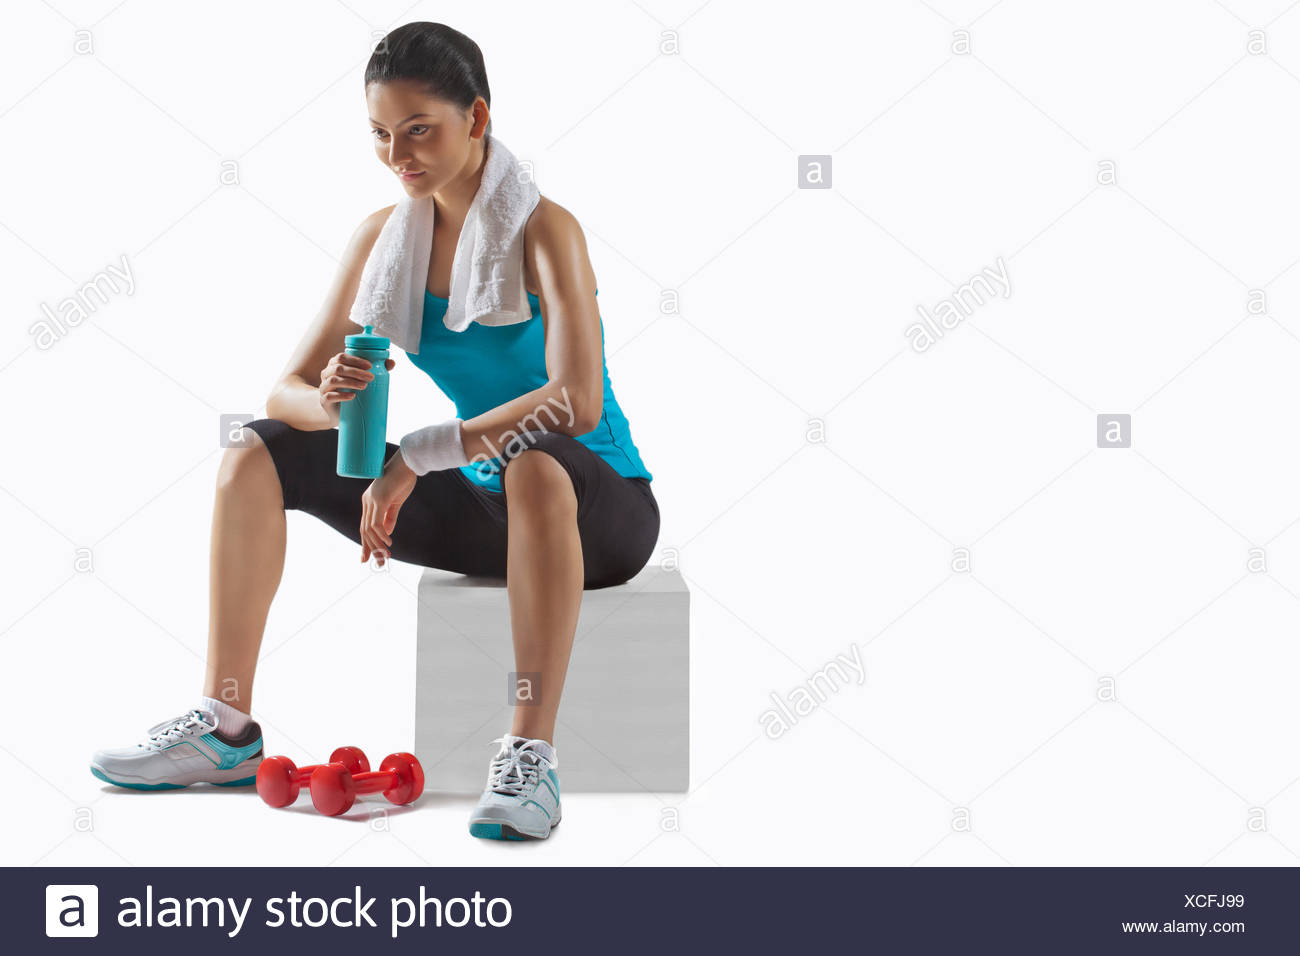 Fit young woman holding water bottle while lost in thoughts over white background - Stock Image